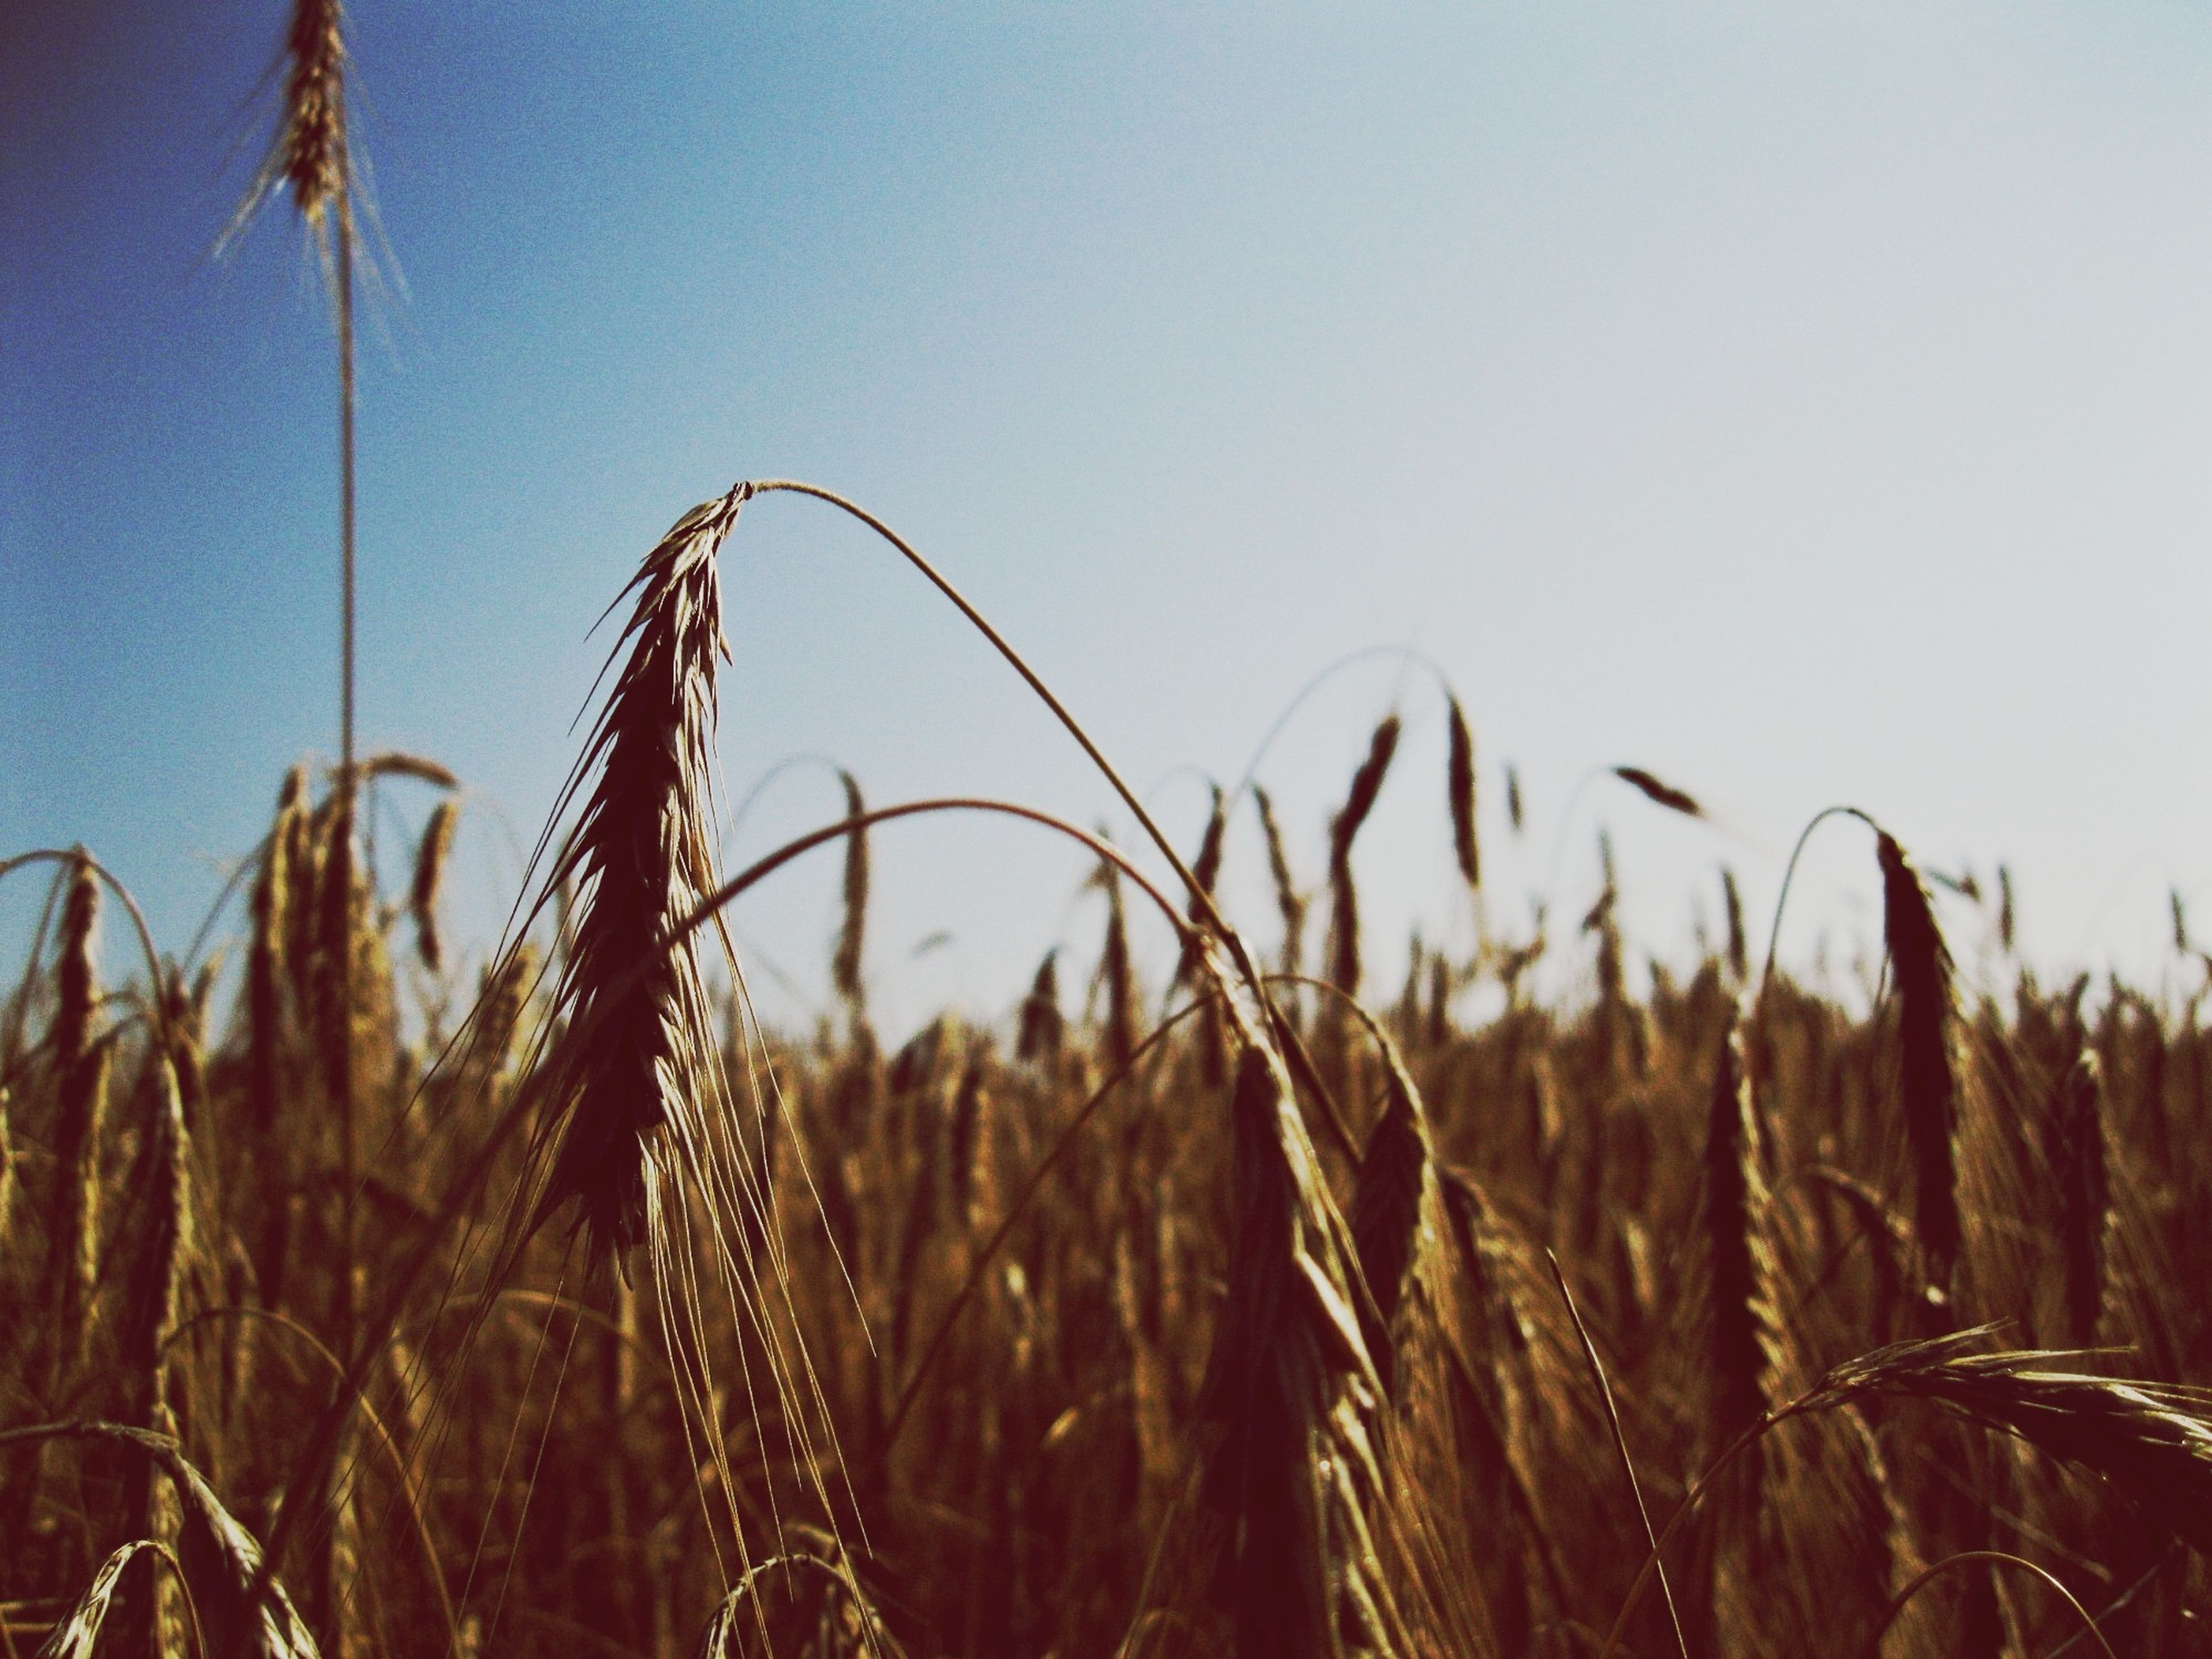 growth, field, plant, grass, crop, wheat, cereal plant, agriculture, stalk, nature, rural scene, straw, farm, tranquility, clear sky, growing, focus on foreground, stem, close-up, beauty in nature